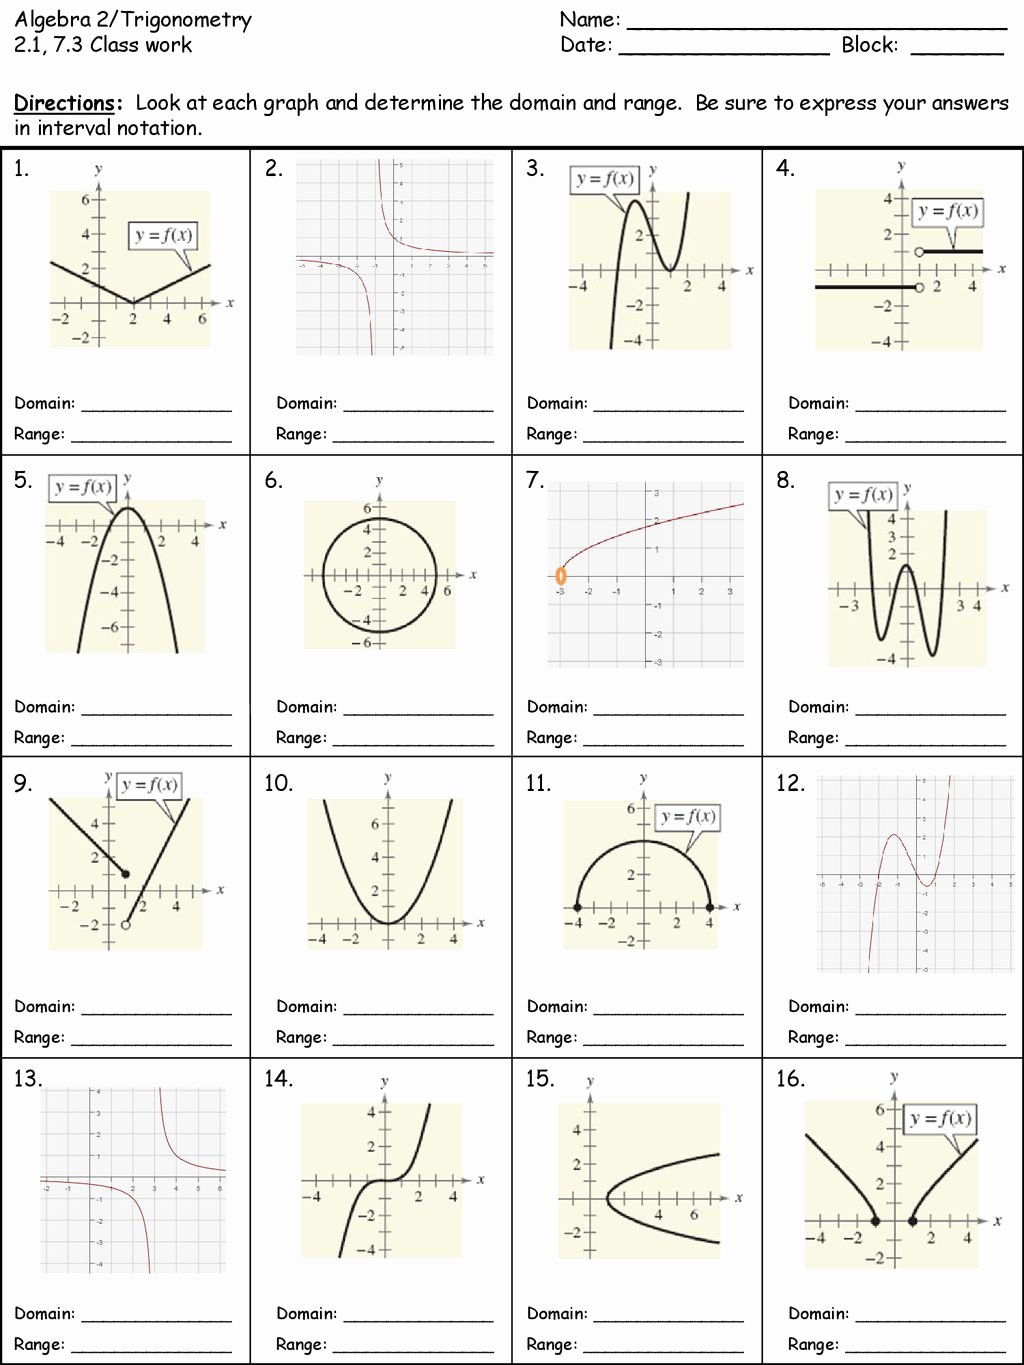 Domain and Range Worksheet 1 Lovely Algebra 2 Trigonometry Name Ppt